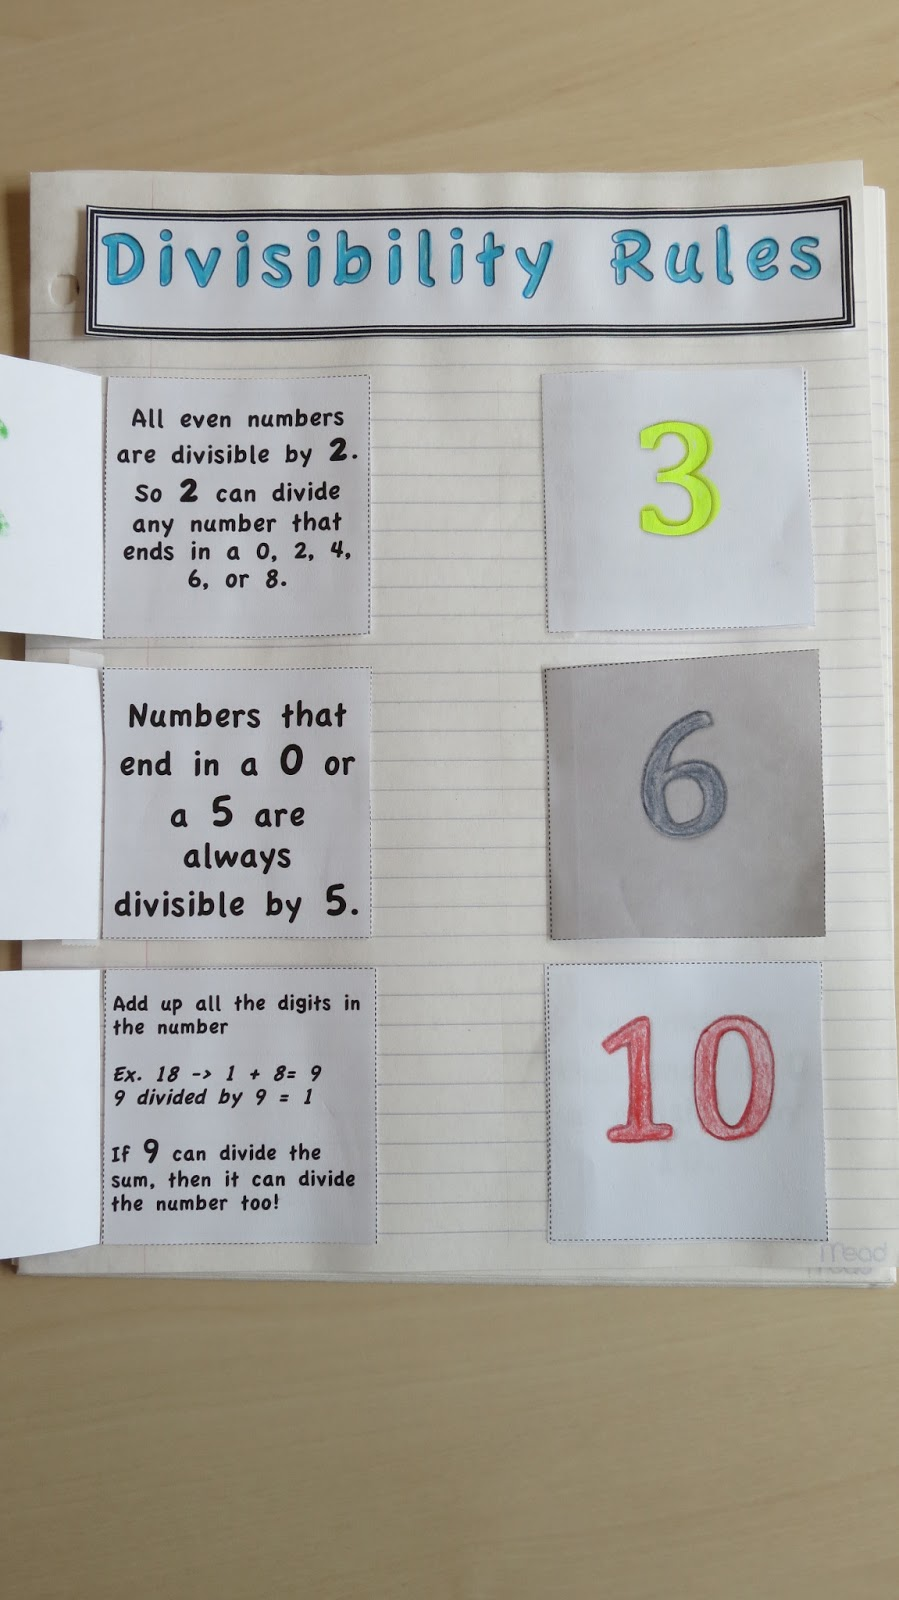 Divisibility Worksheets 4th Grade divisibility game knowledge – Math Divisibility Rules Worksheet